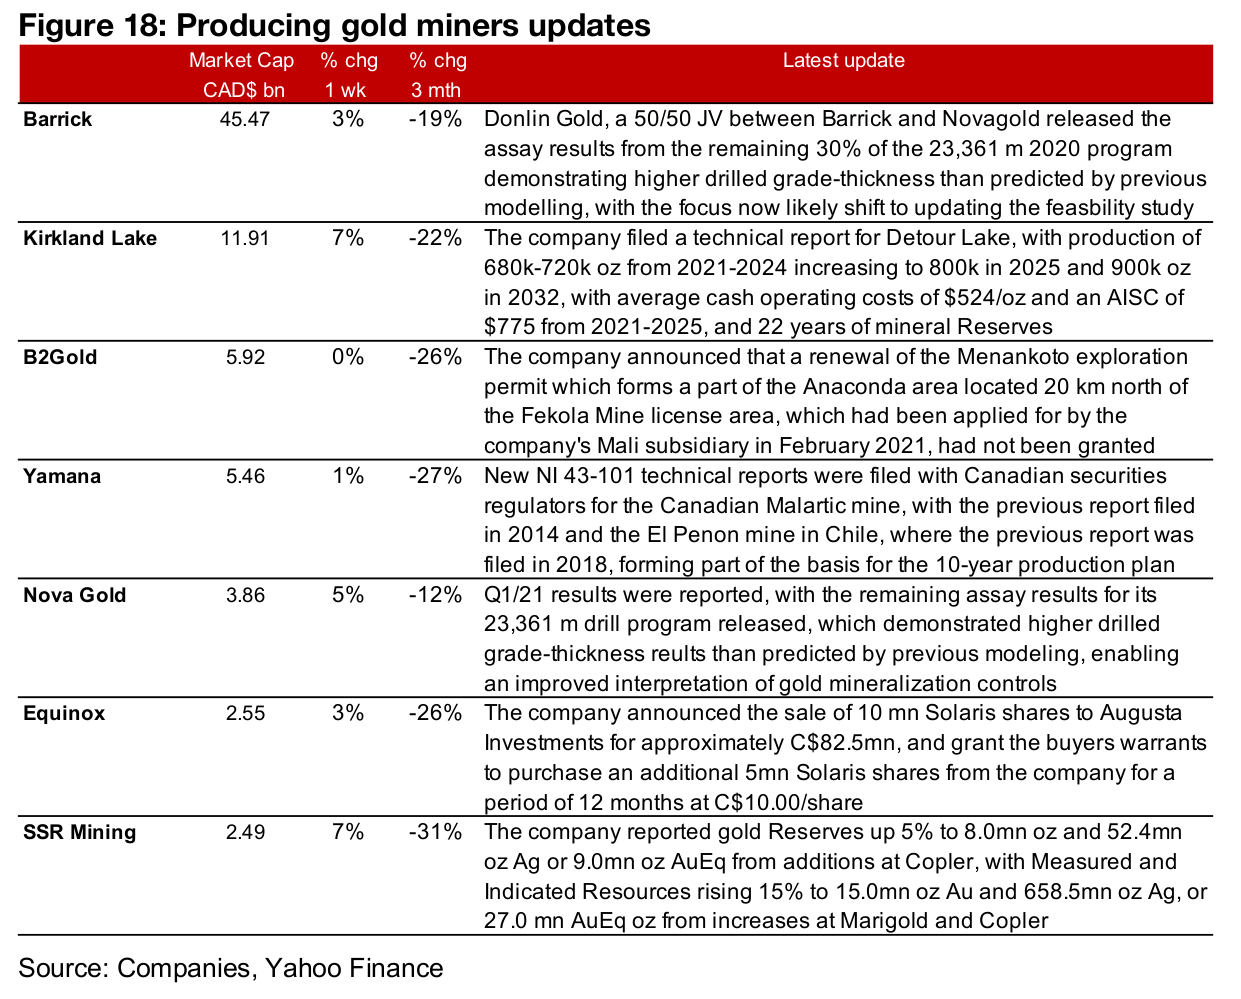 Producing miners nearly all up on gold rebound